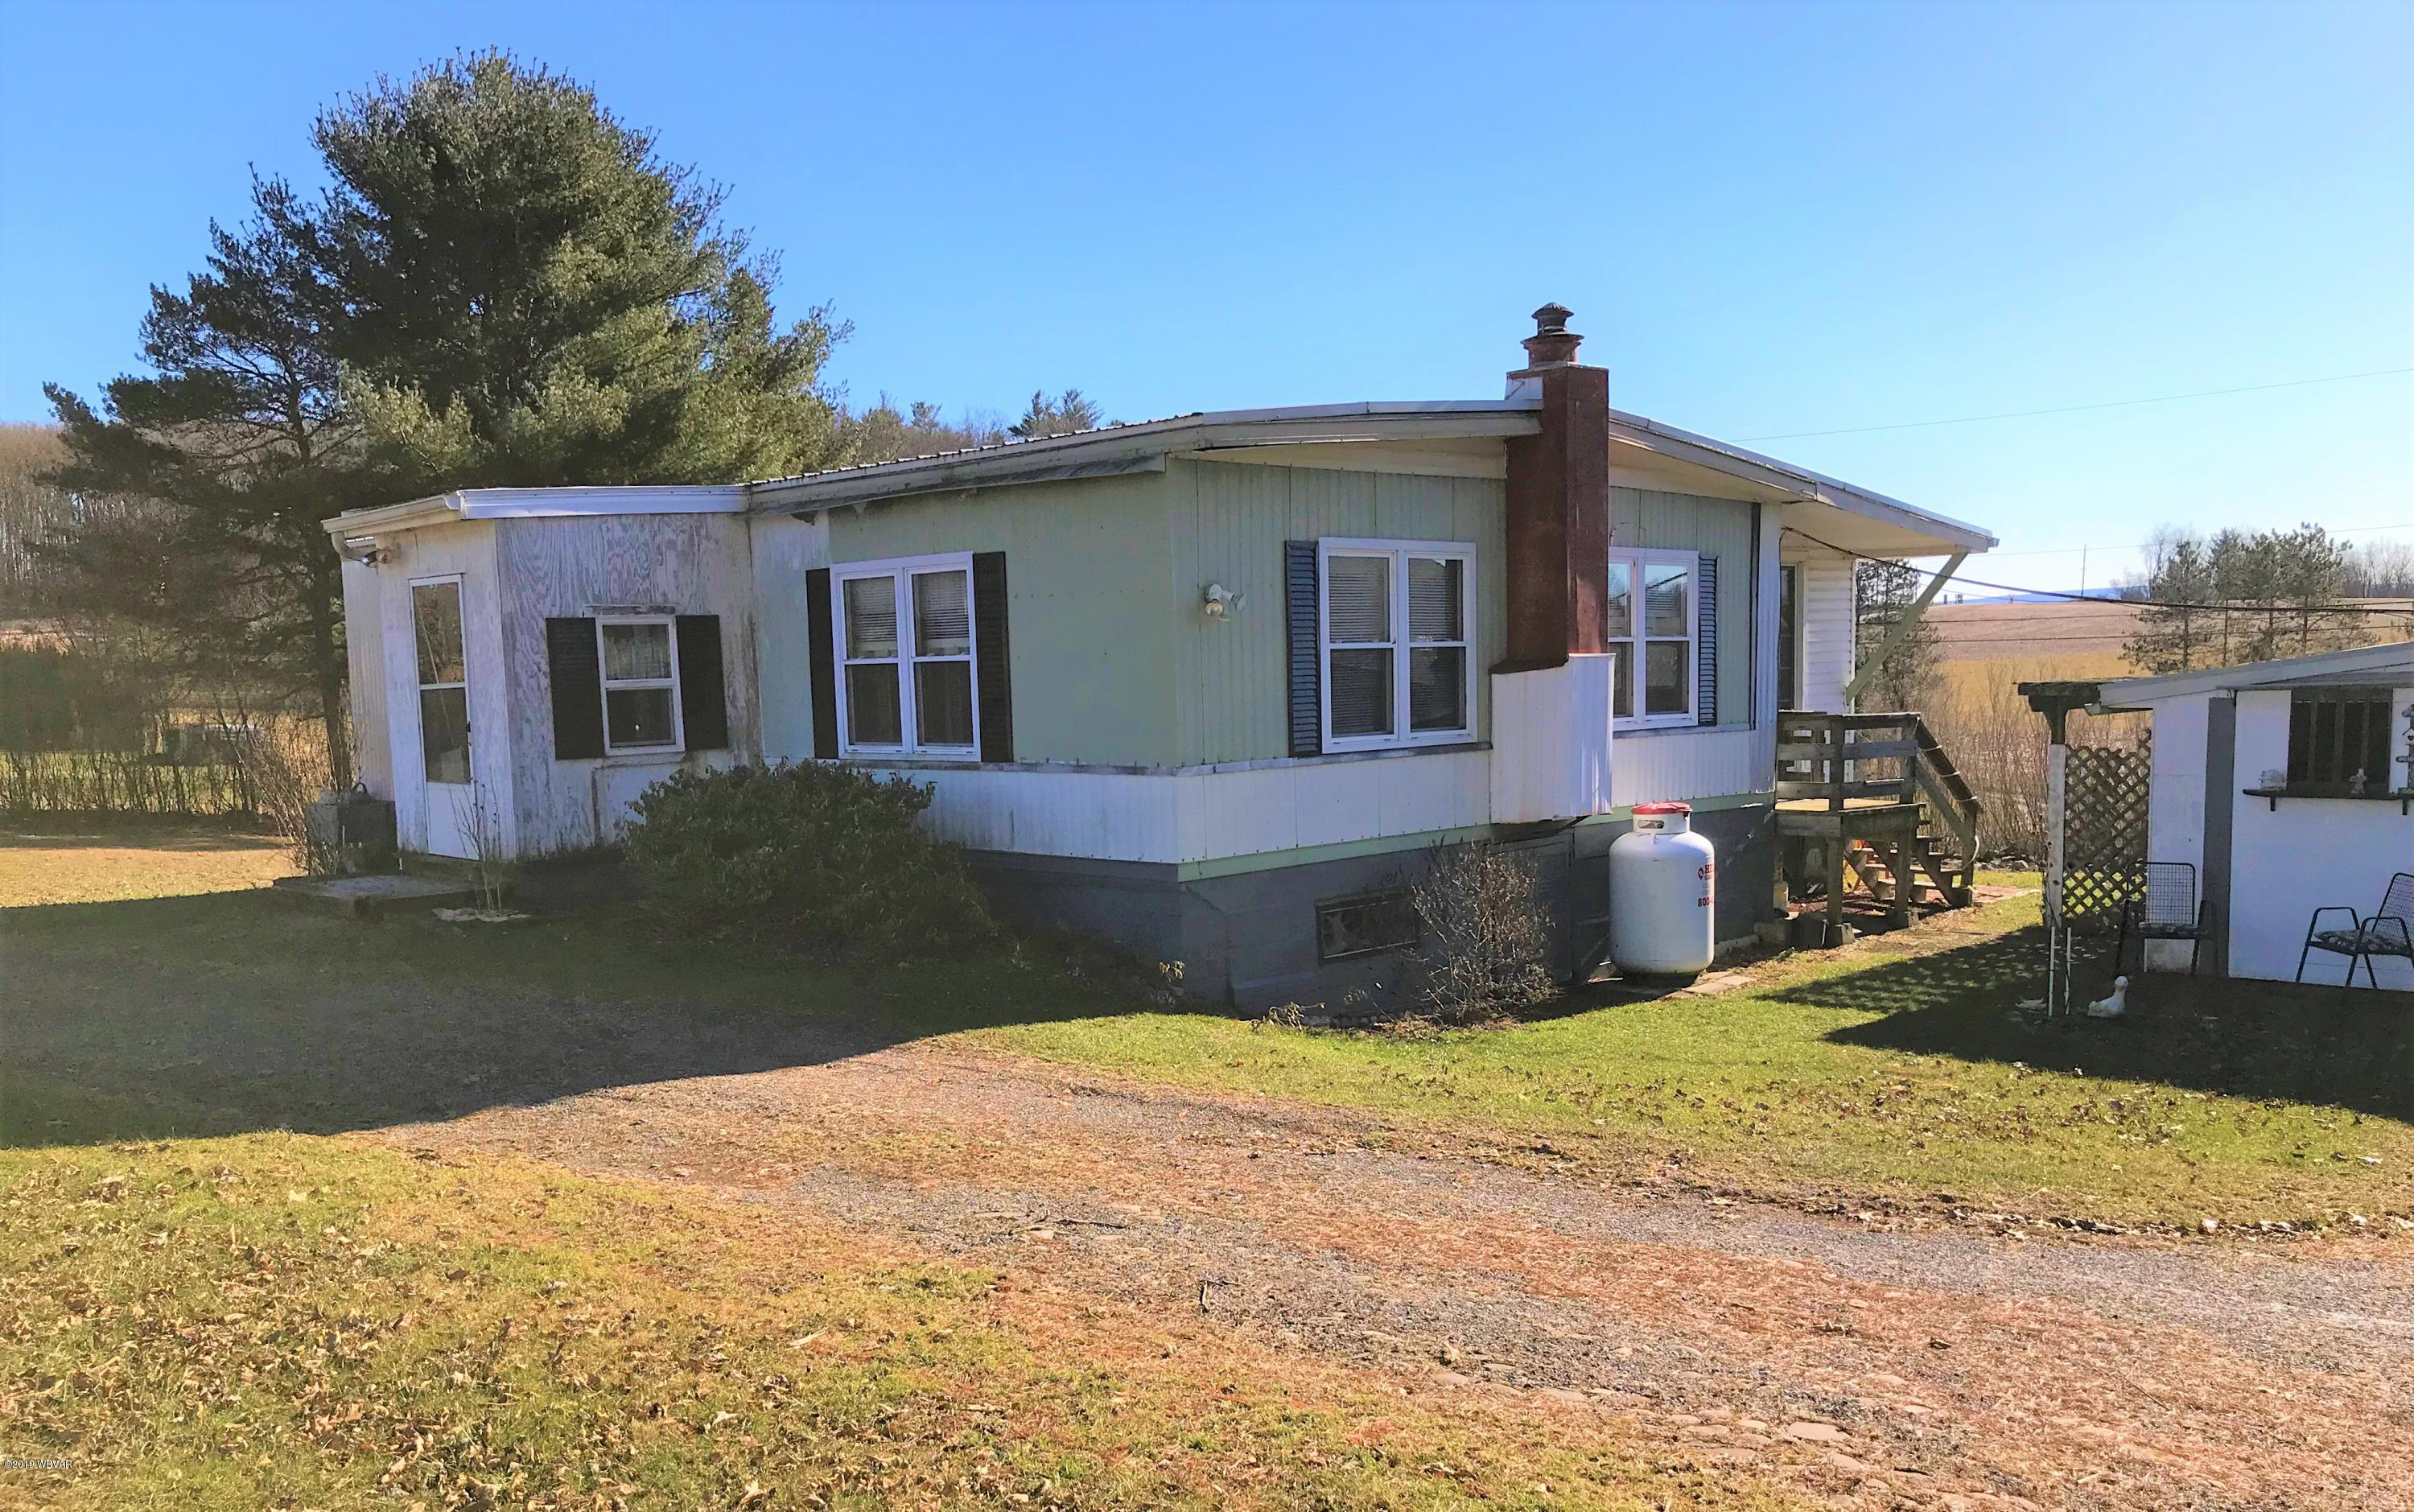 117 RIDGE TOP ROAD,Cogan Station,PA 17728,2 Bedrooms Bedrooms,1 BathroomBathrooms,Residential,RIDGE TOP,WB-86222